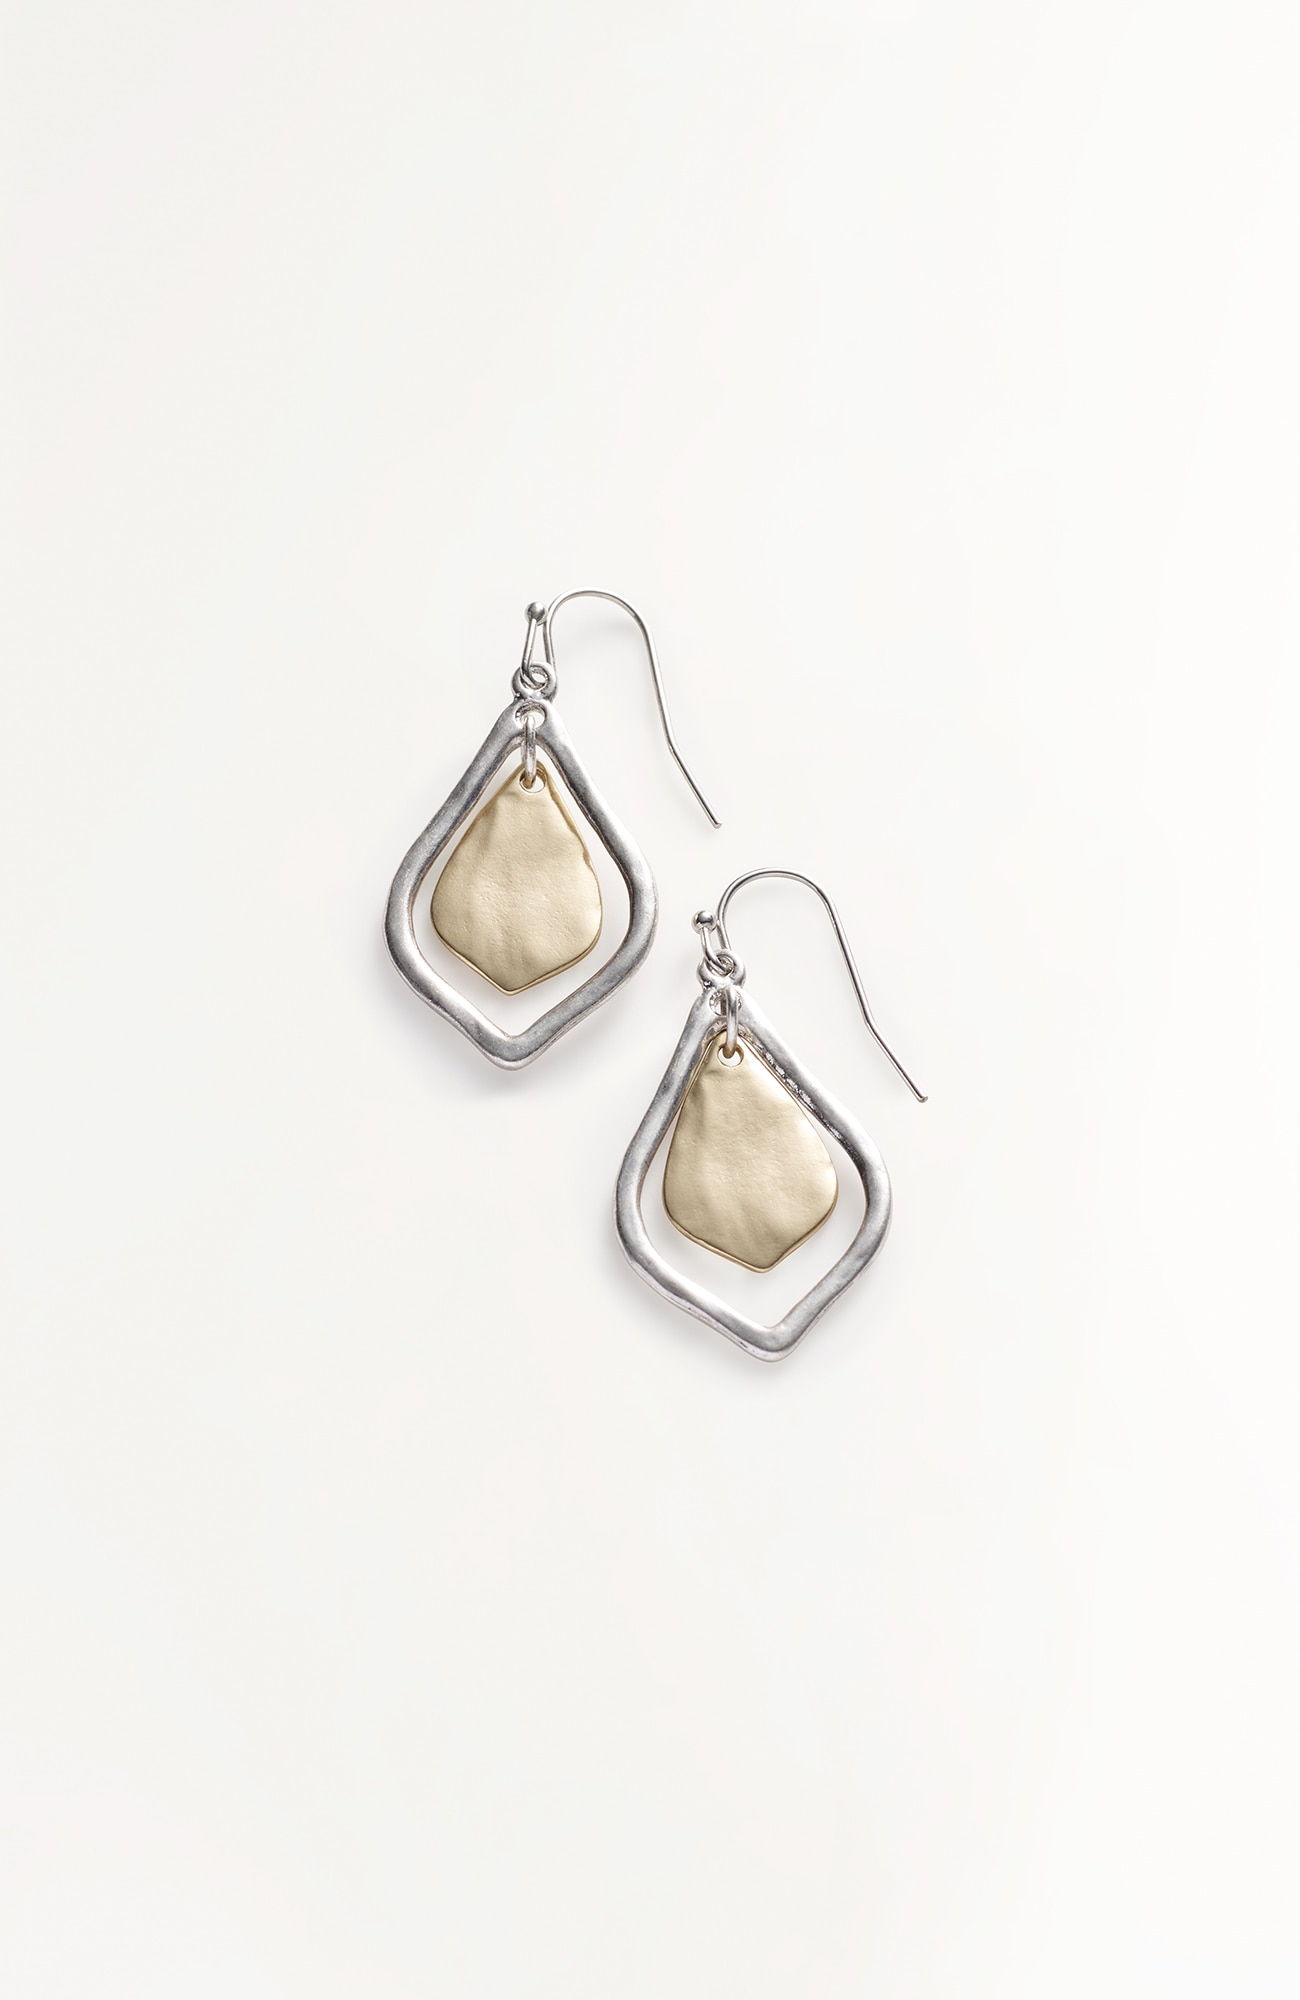 mixed-metal teardrop earrings